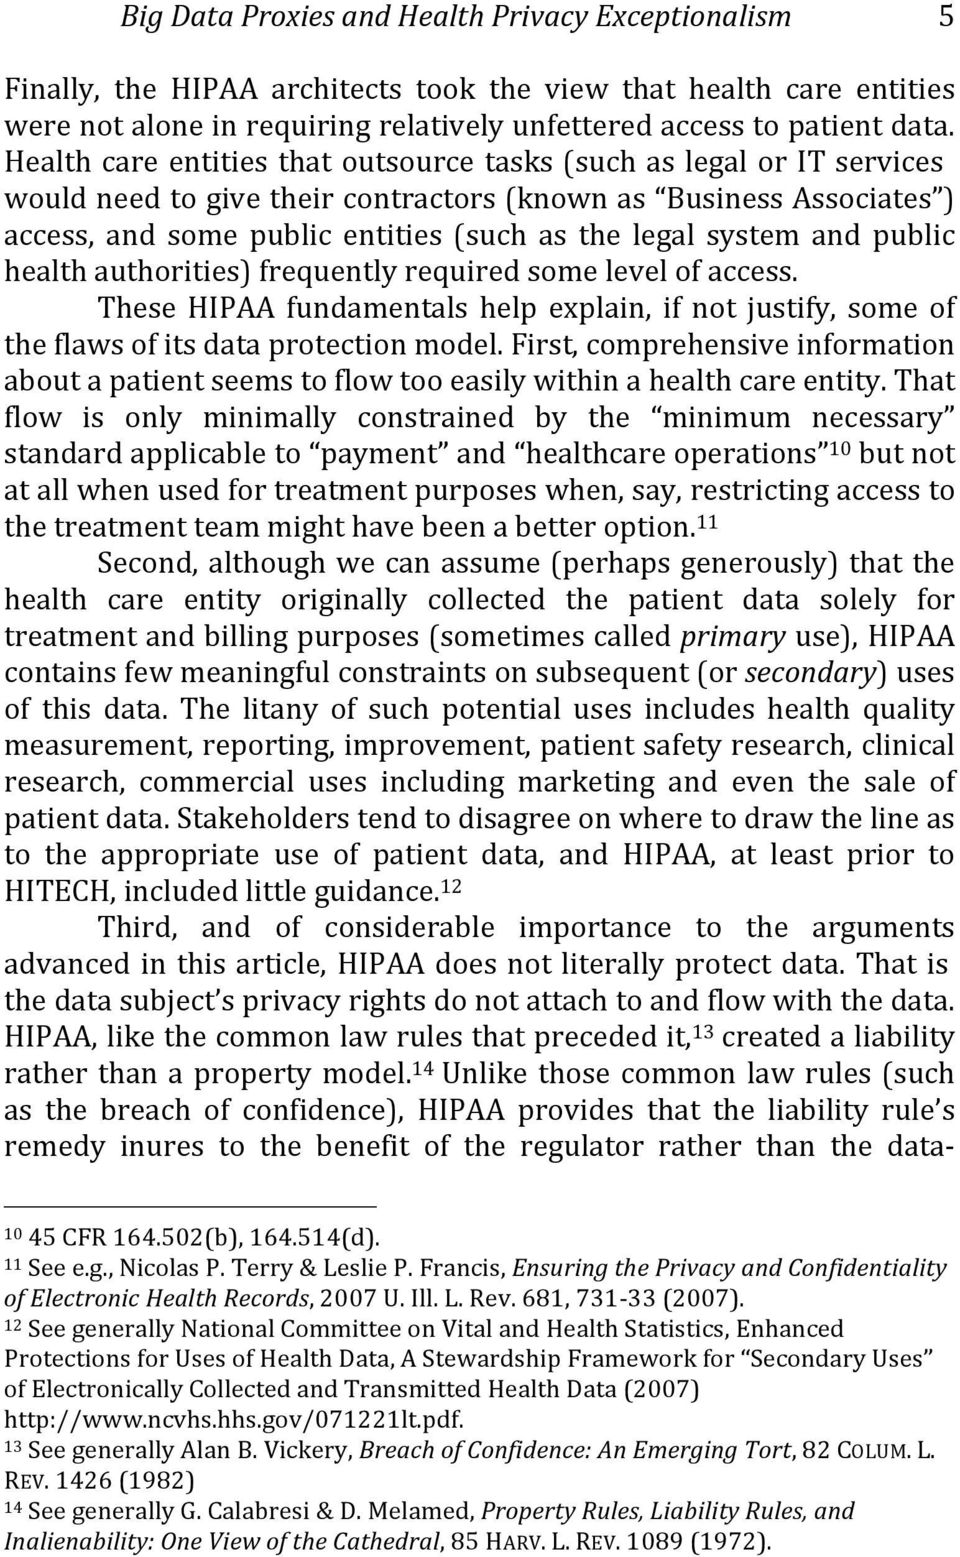 and public health authorities) frequently required some level of access. These HIPAA fundamentals help explain, if not justify, some of the flaws of its data protection model.